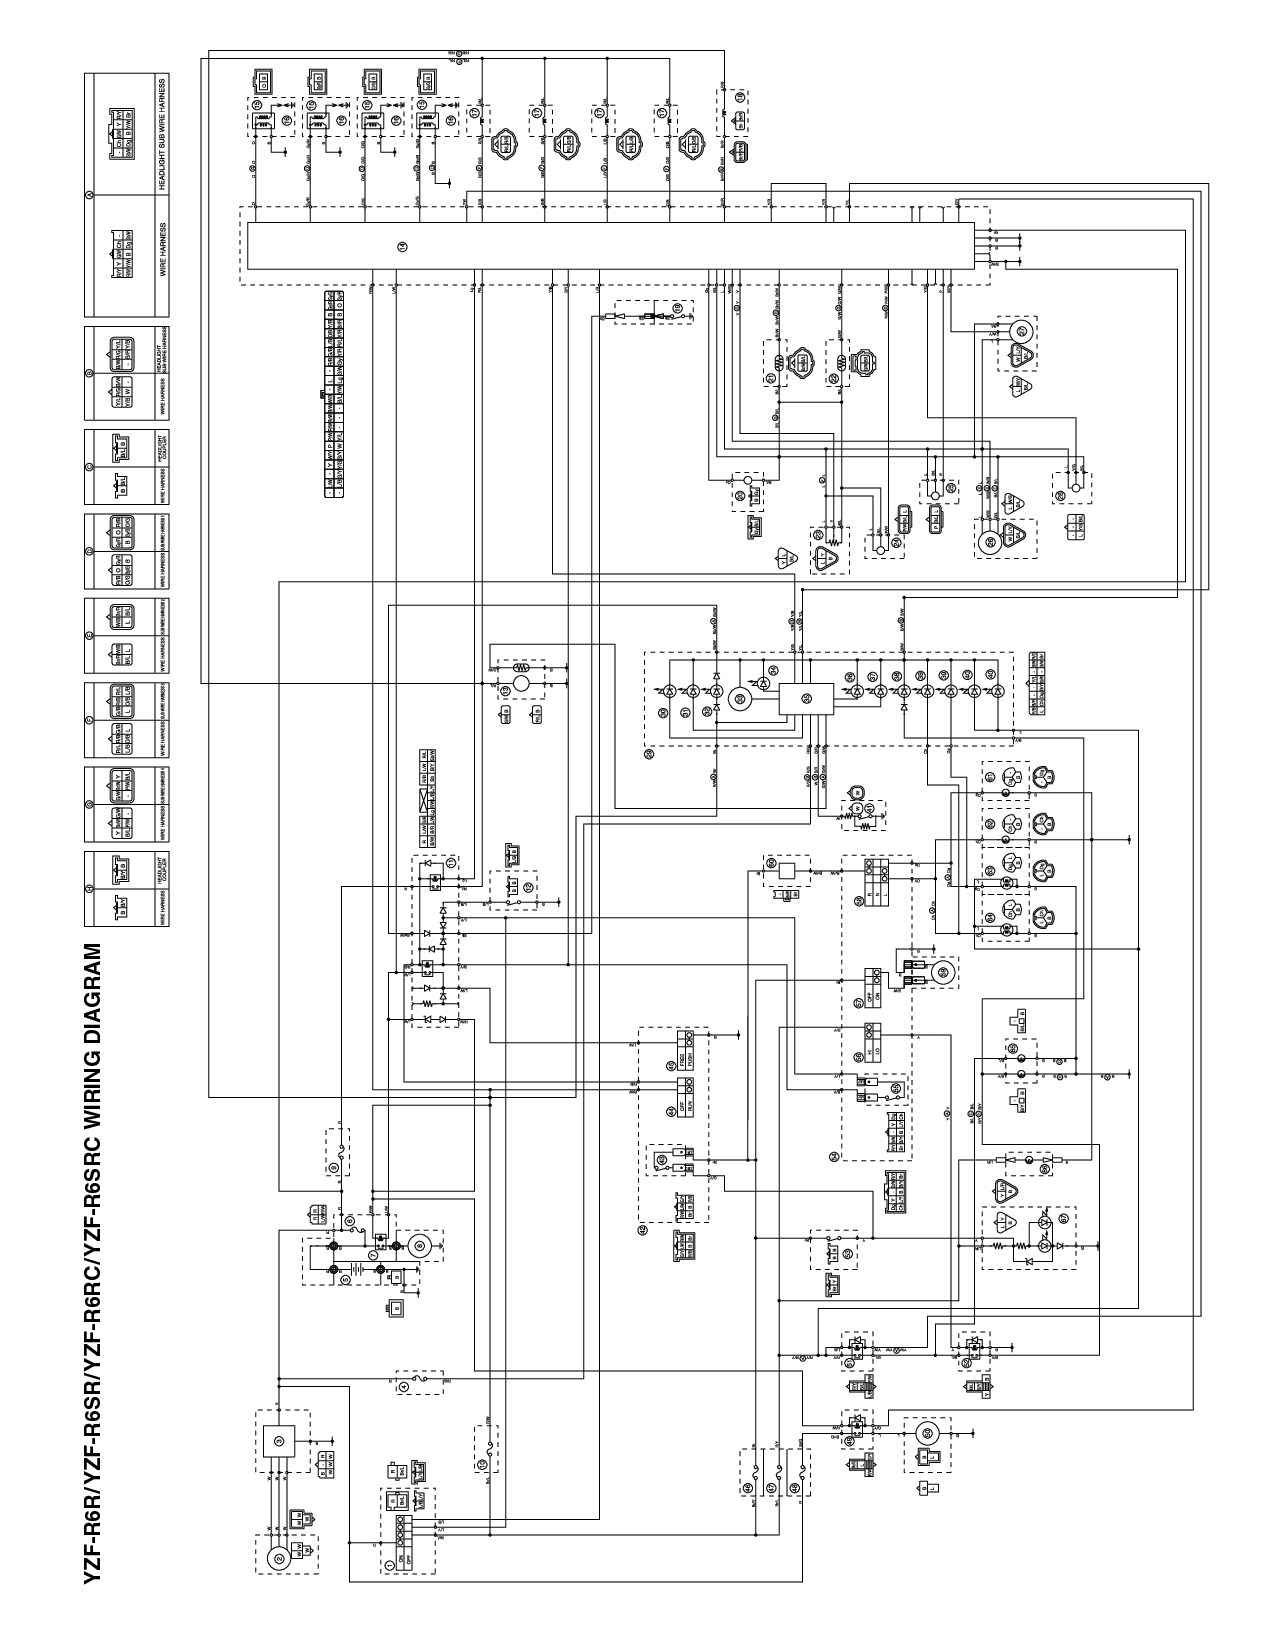 1999 Yamaha R6 Wiring Harness Diagram Wiring Diagram Resource Resource Led Illumina It